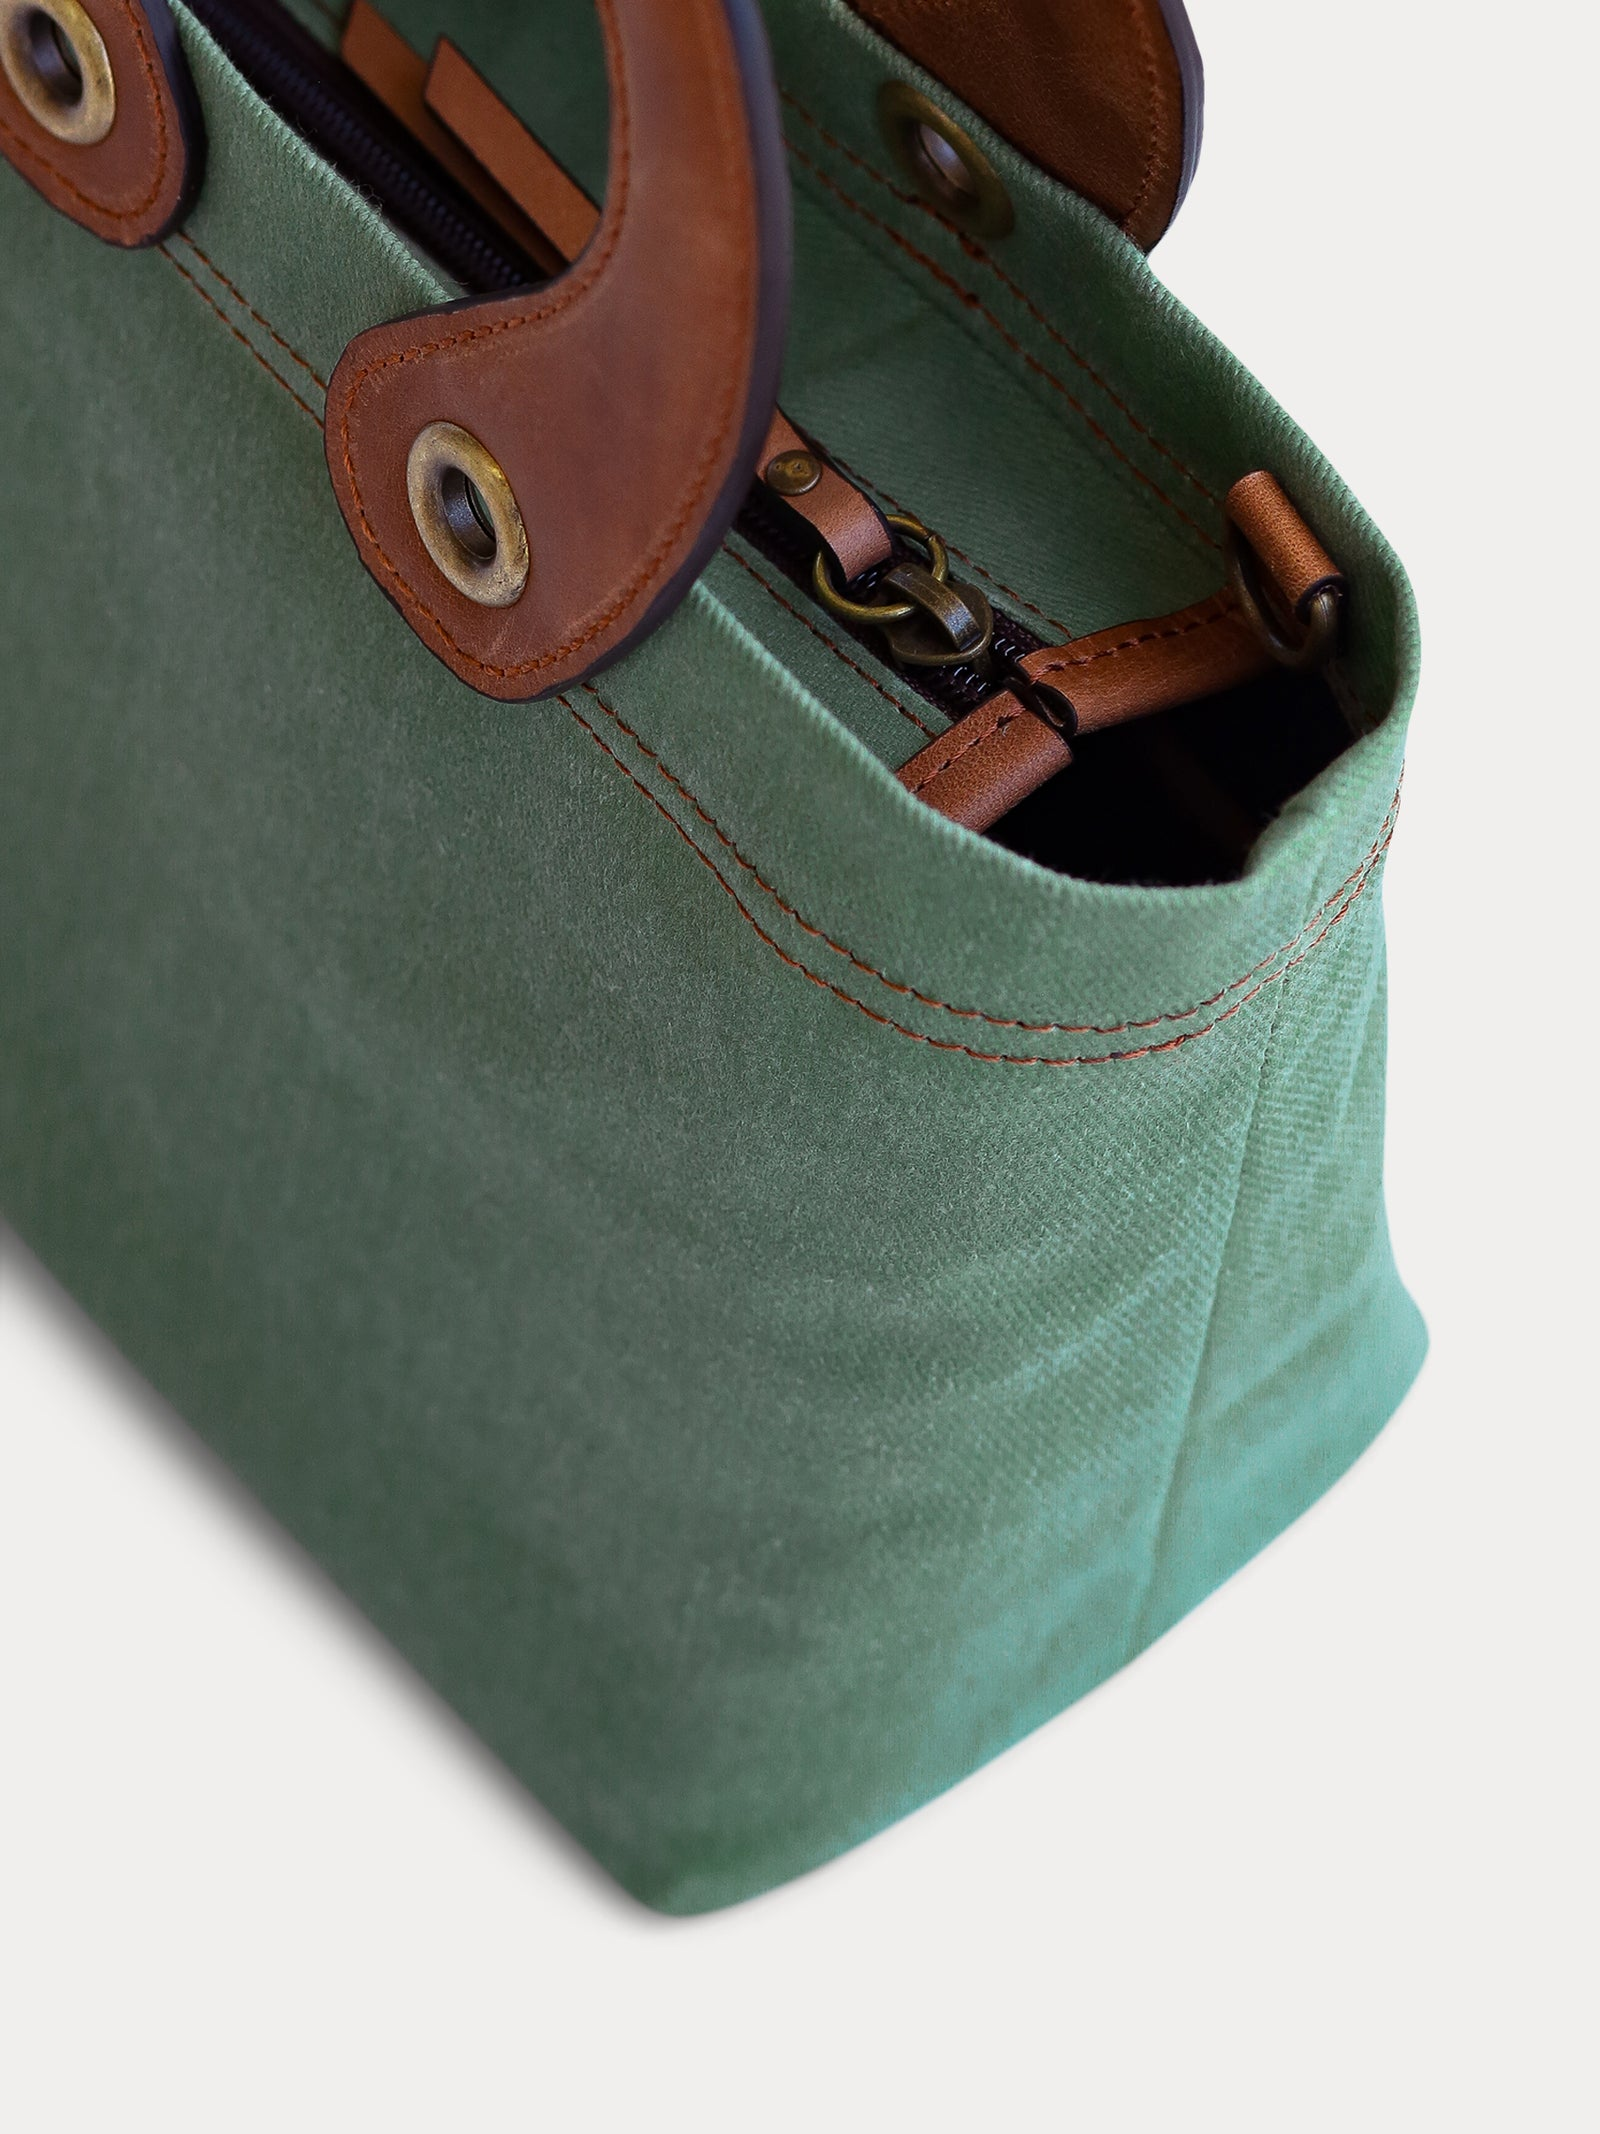 light green canvas tote bag